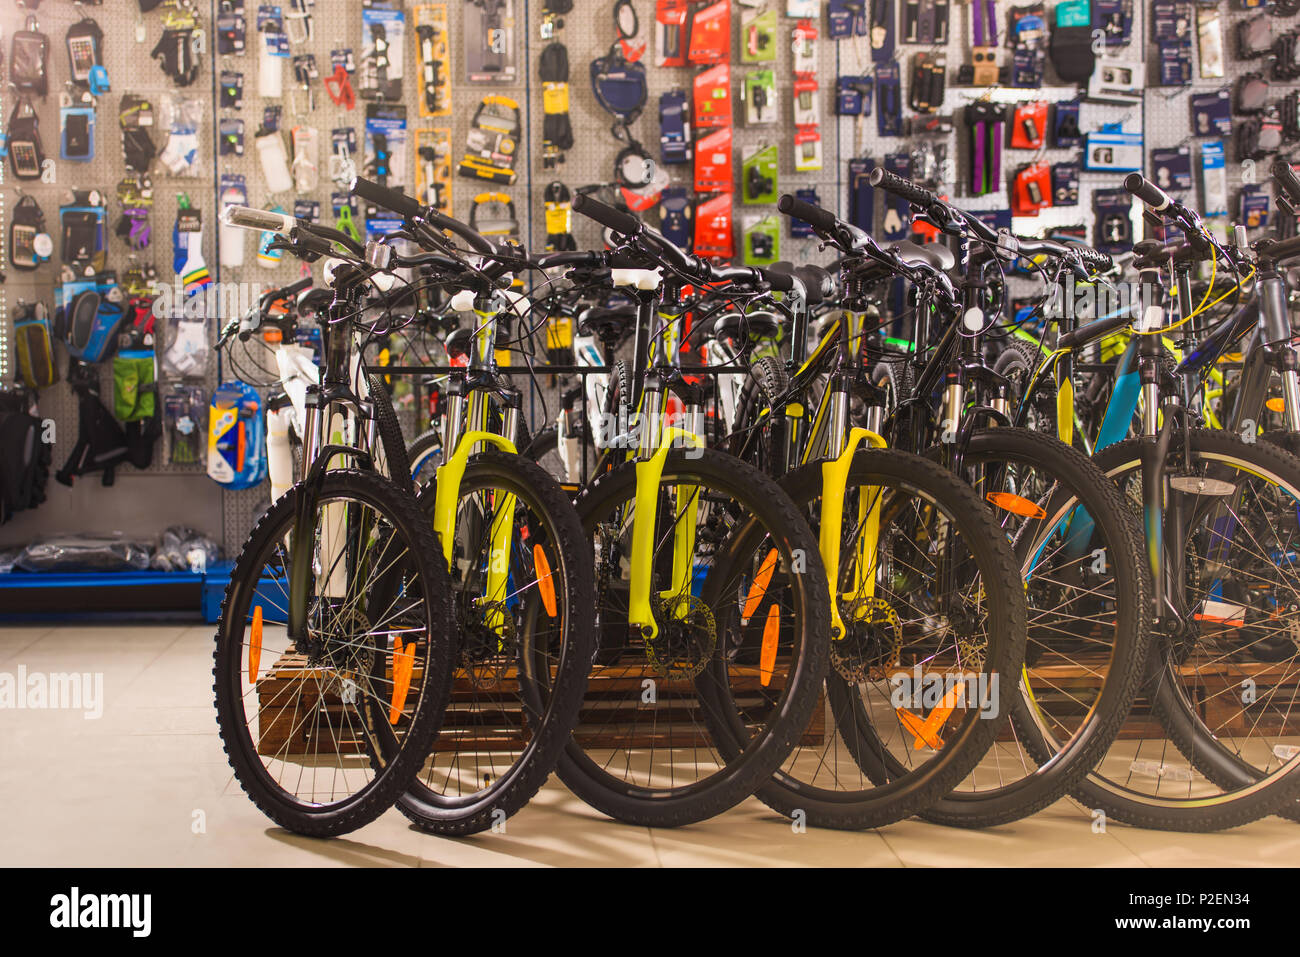 new modern bicycles selling in bike shop - Stock Image